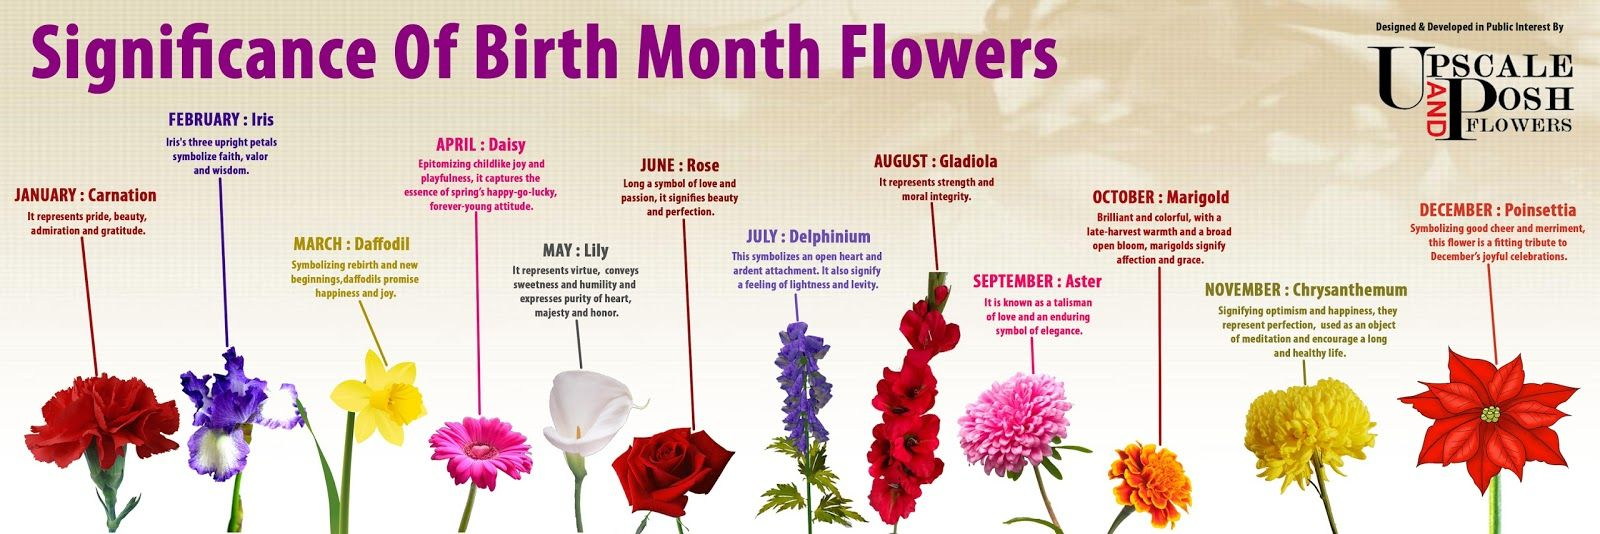 Each Month Encompasses A Flower That Symbolizes The Month Of Somebody 39 S Birth The Characteri Birth Month Flowers April Birth Flower February Birth Flowers